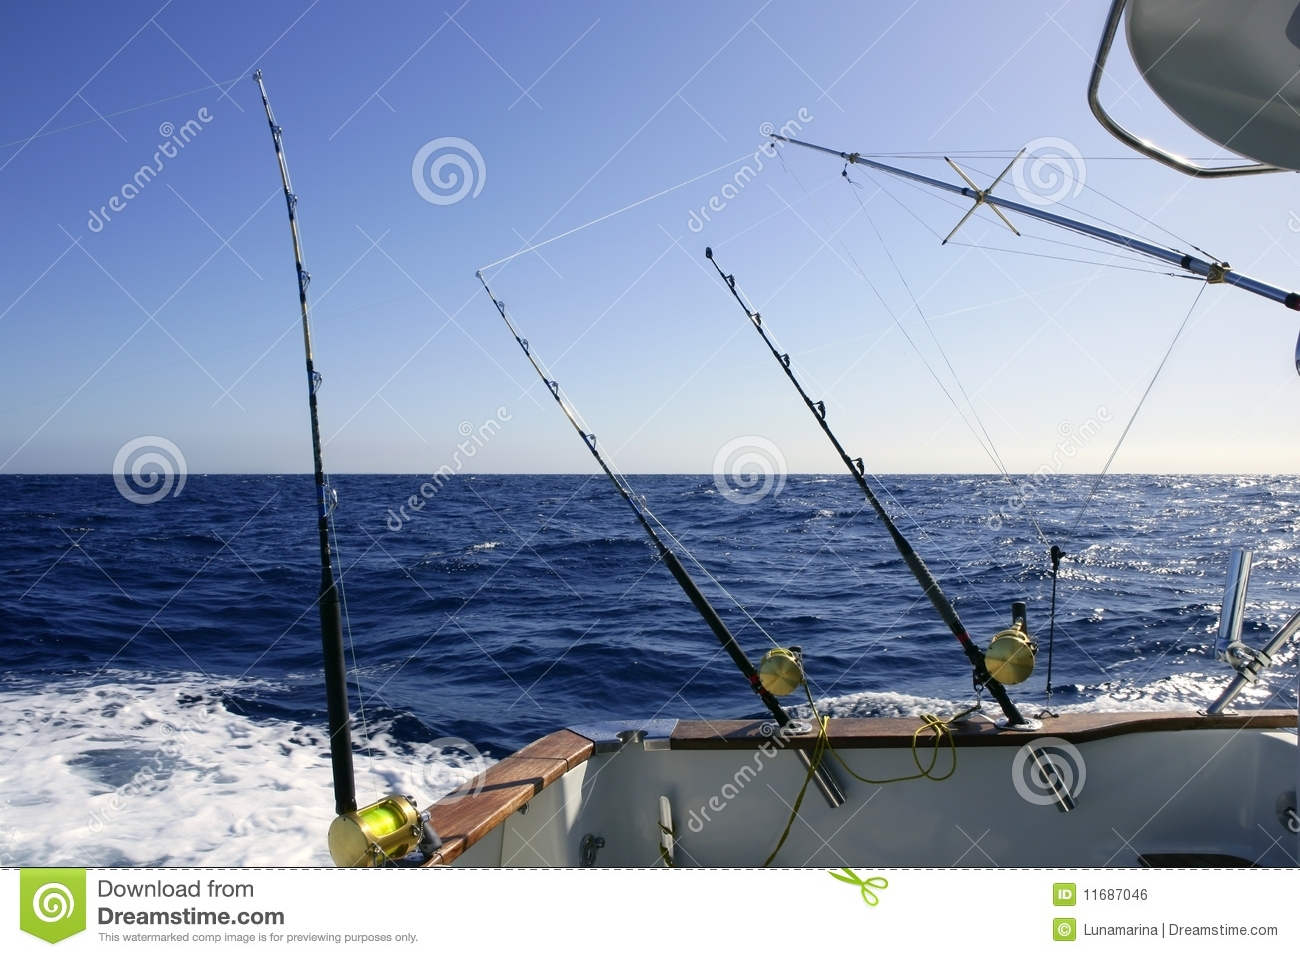 Big game boat fishing in deep sea royalty free stock image for Fishing boat games